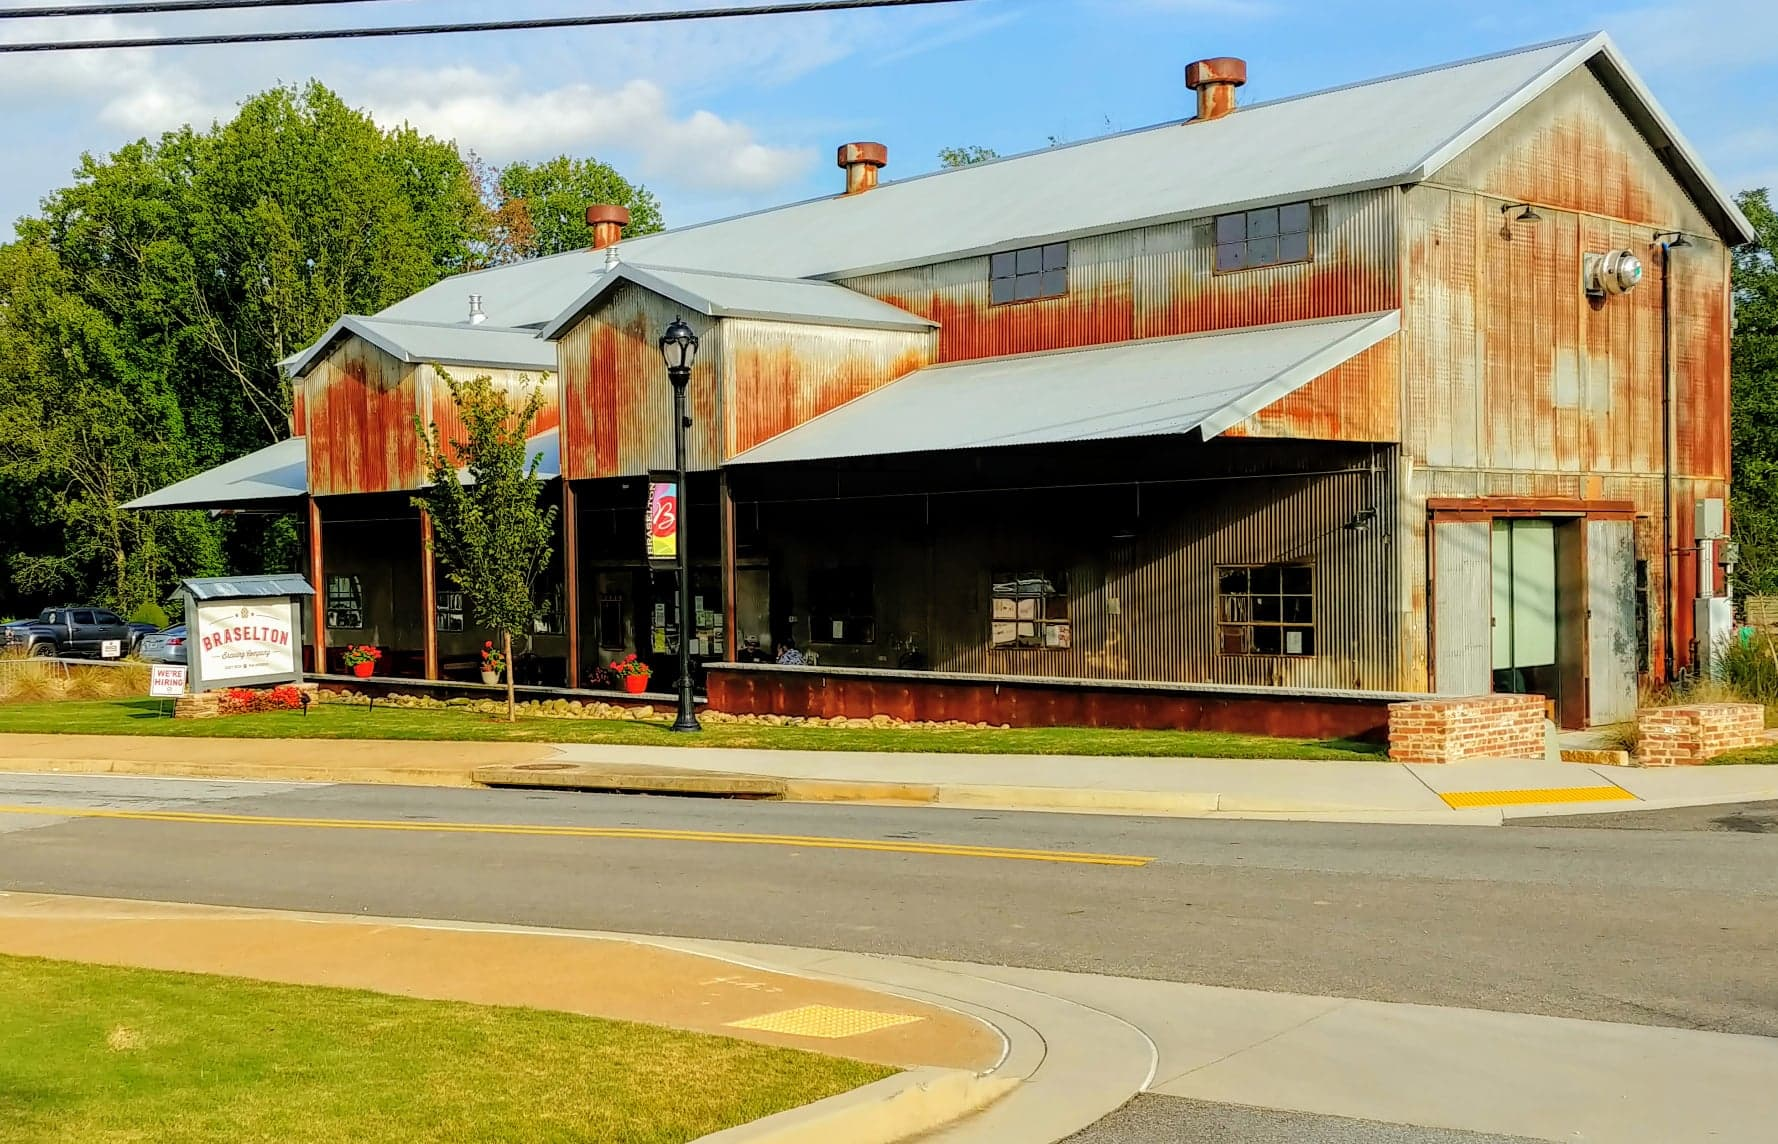 Braselton-Brewing-Company-Old-Cotton-Gin-2020-09-23